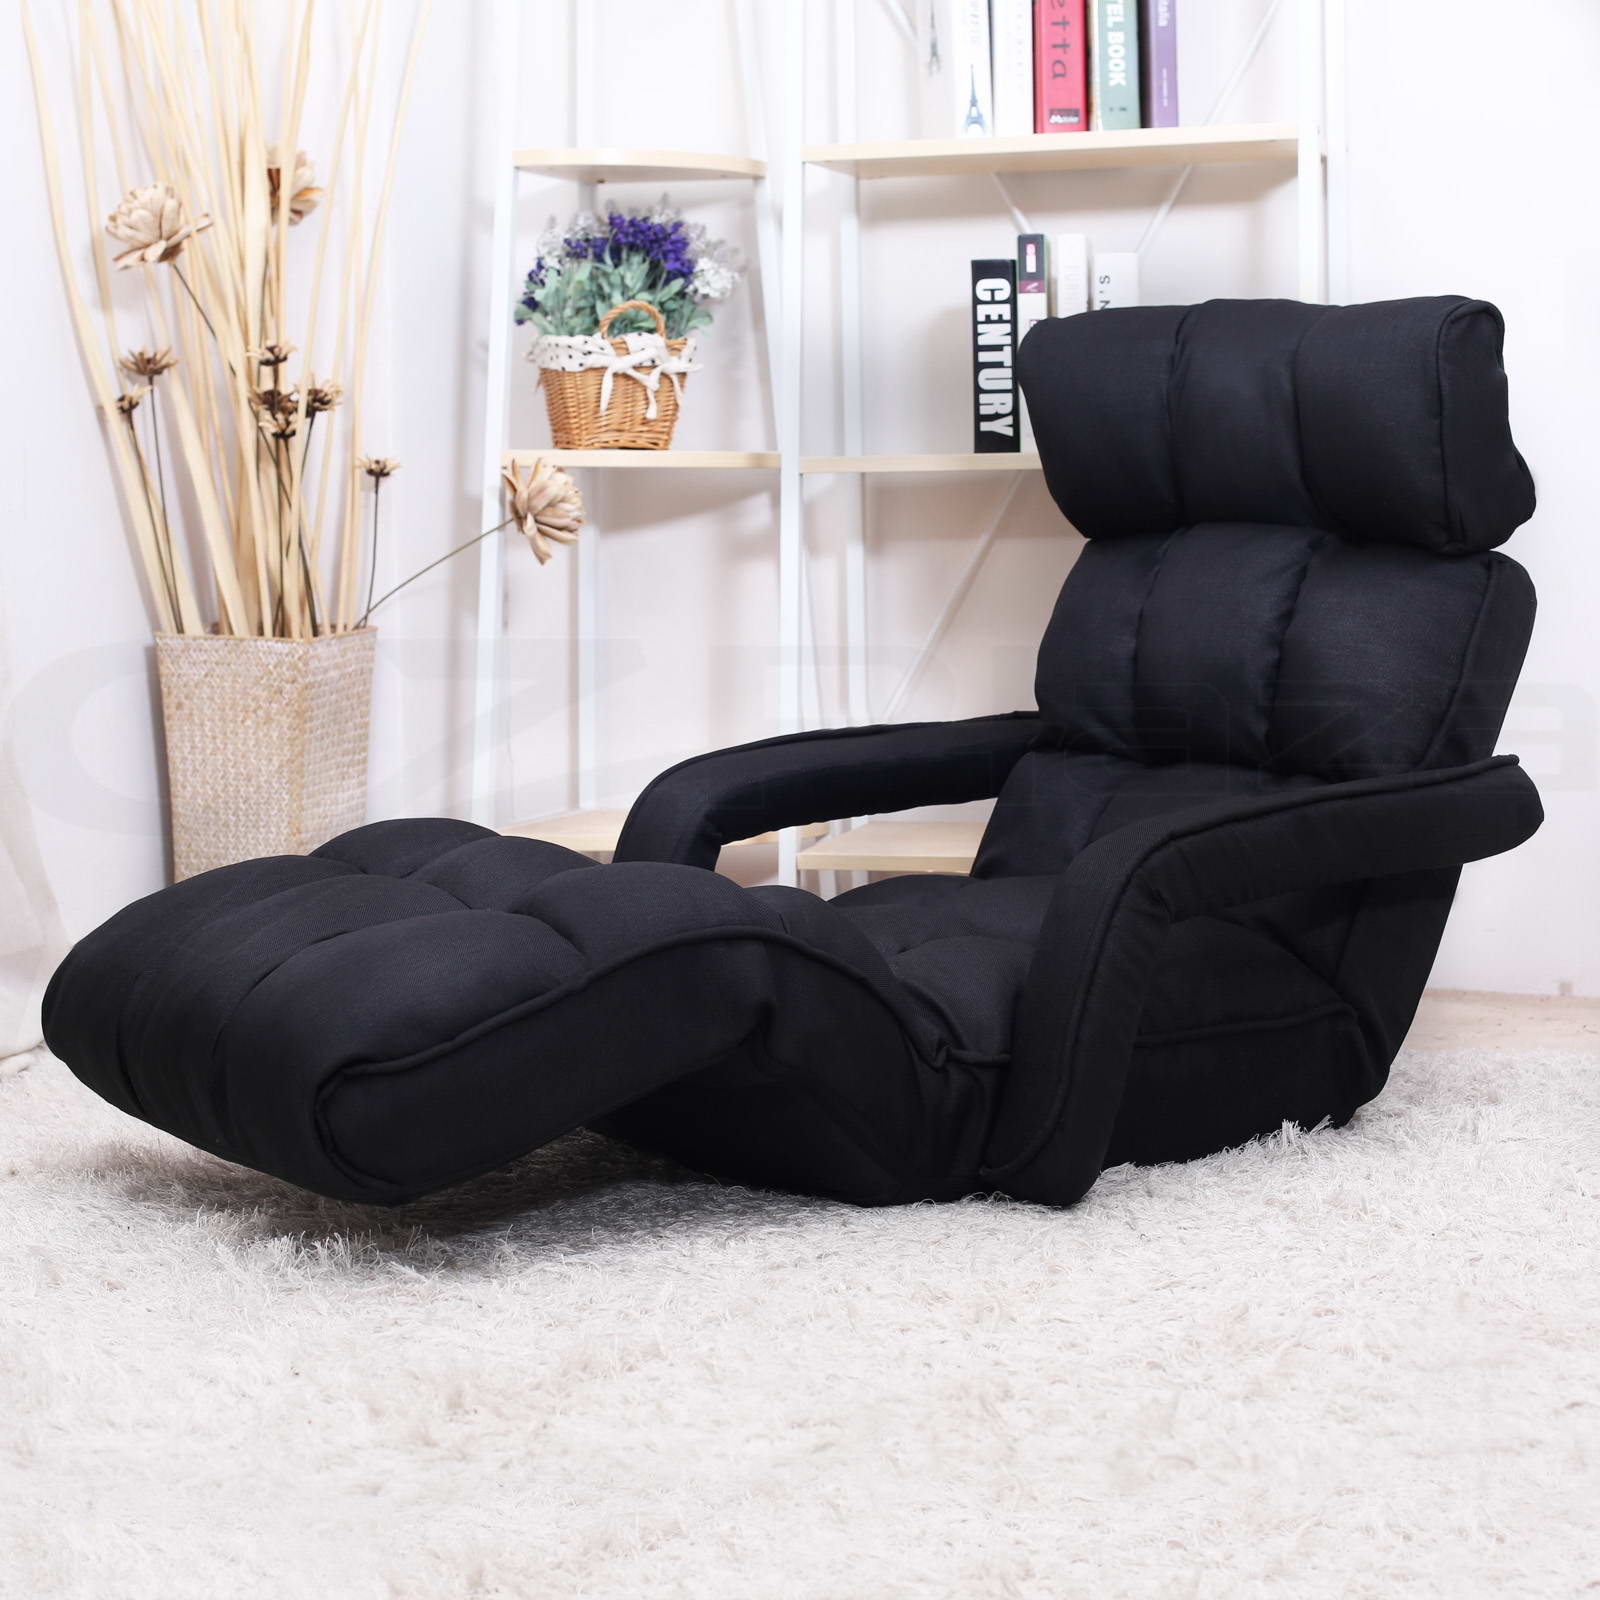 folding floor chair australia invisible prank single home lounge sofa bed recliner armchair